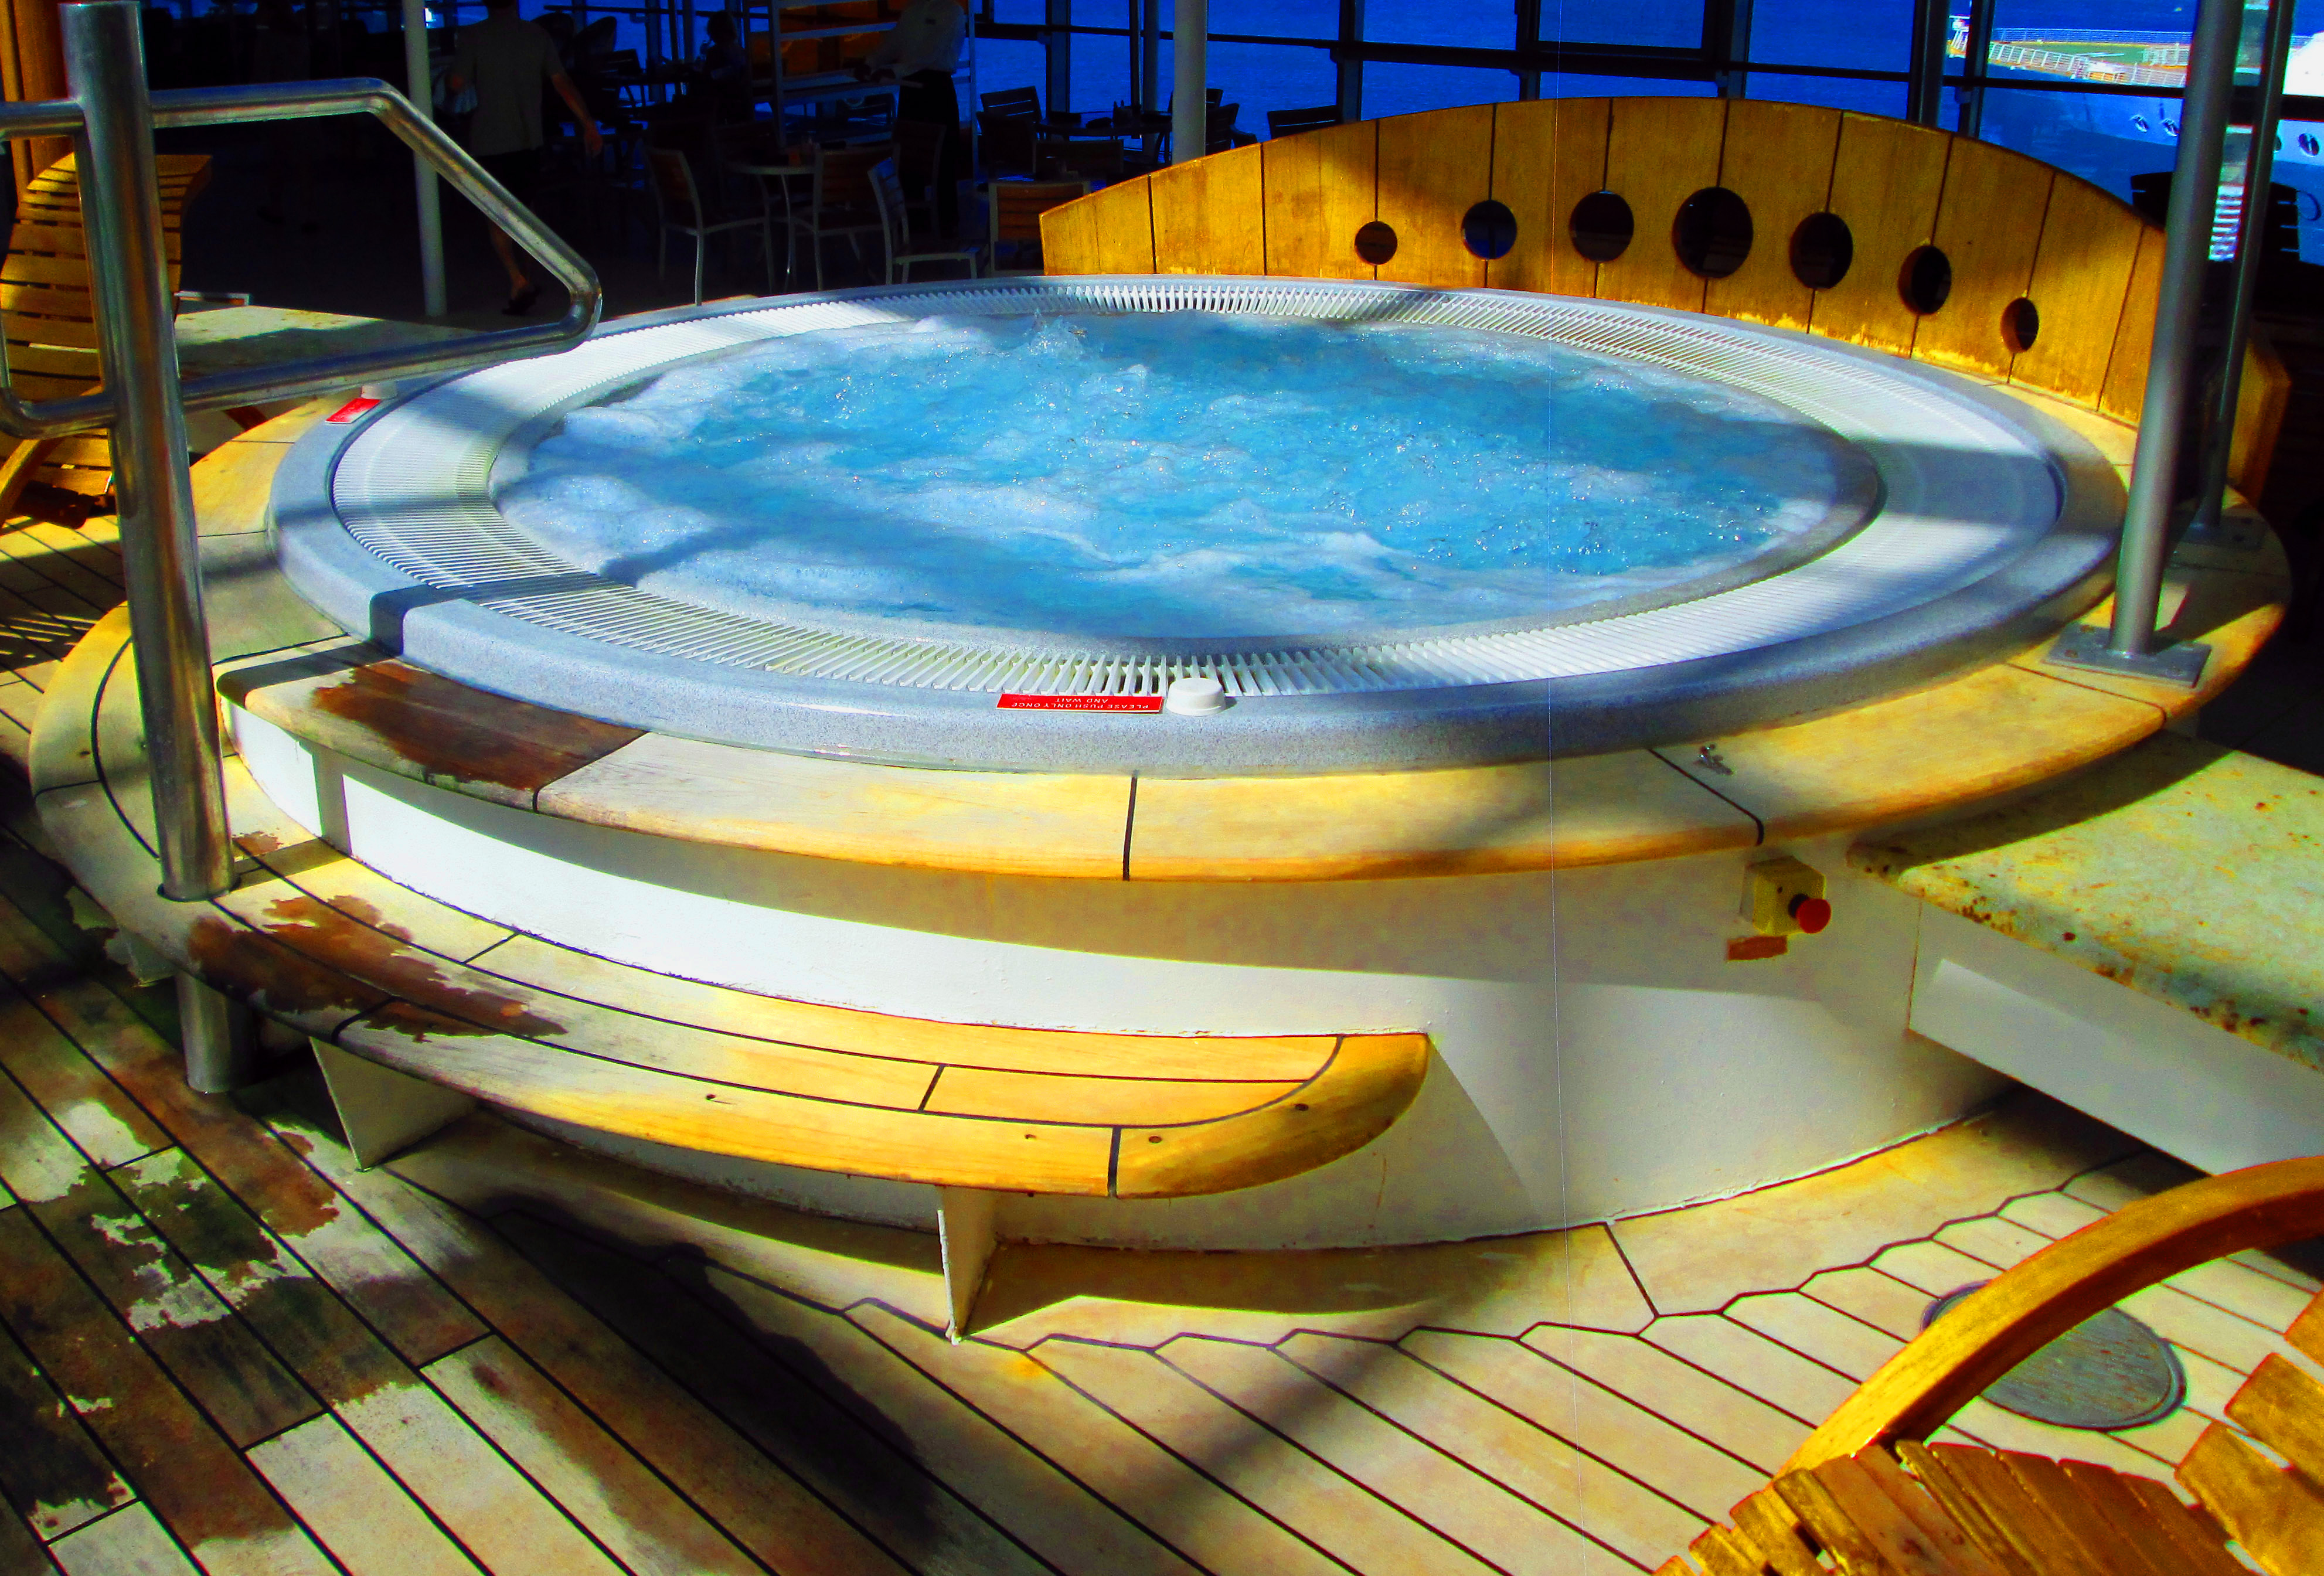 Celebrity Summit Hot Tub In Enclosed Spa Area